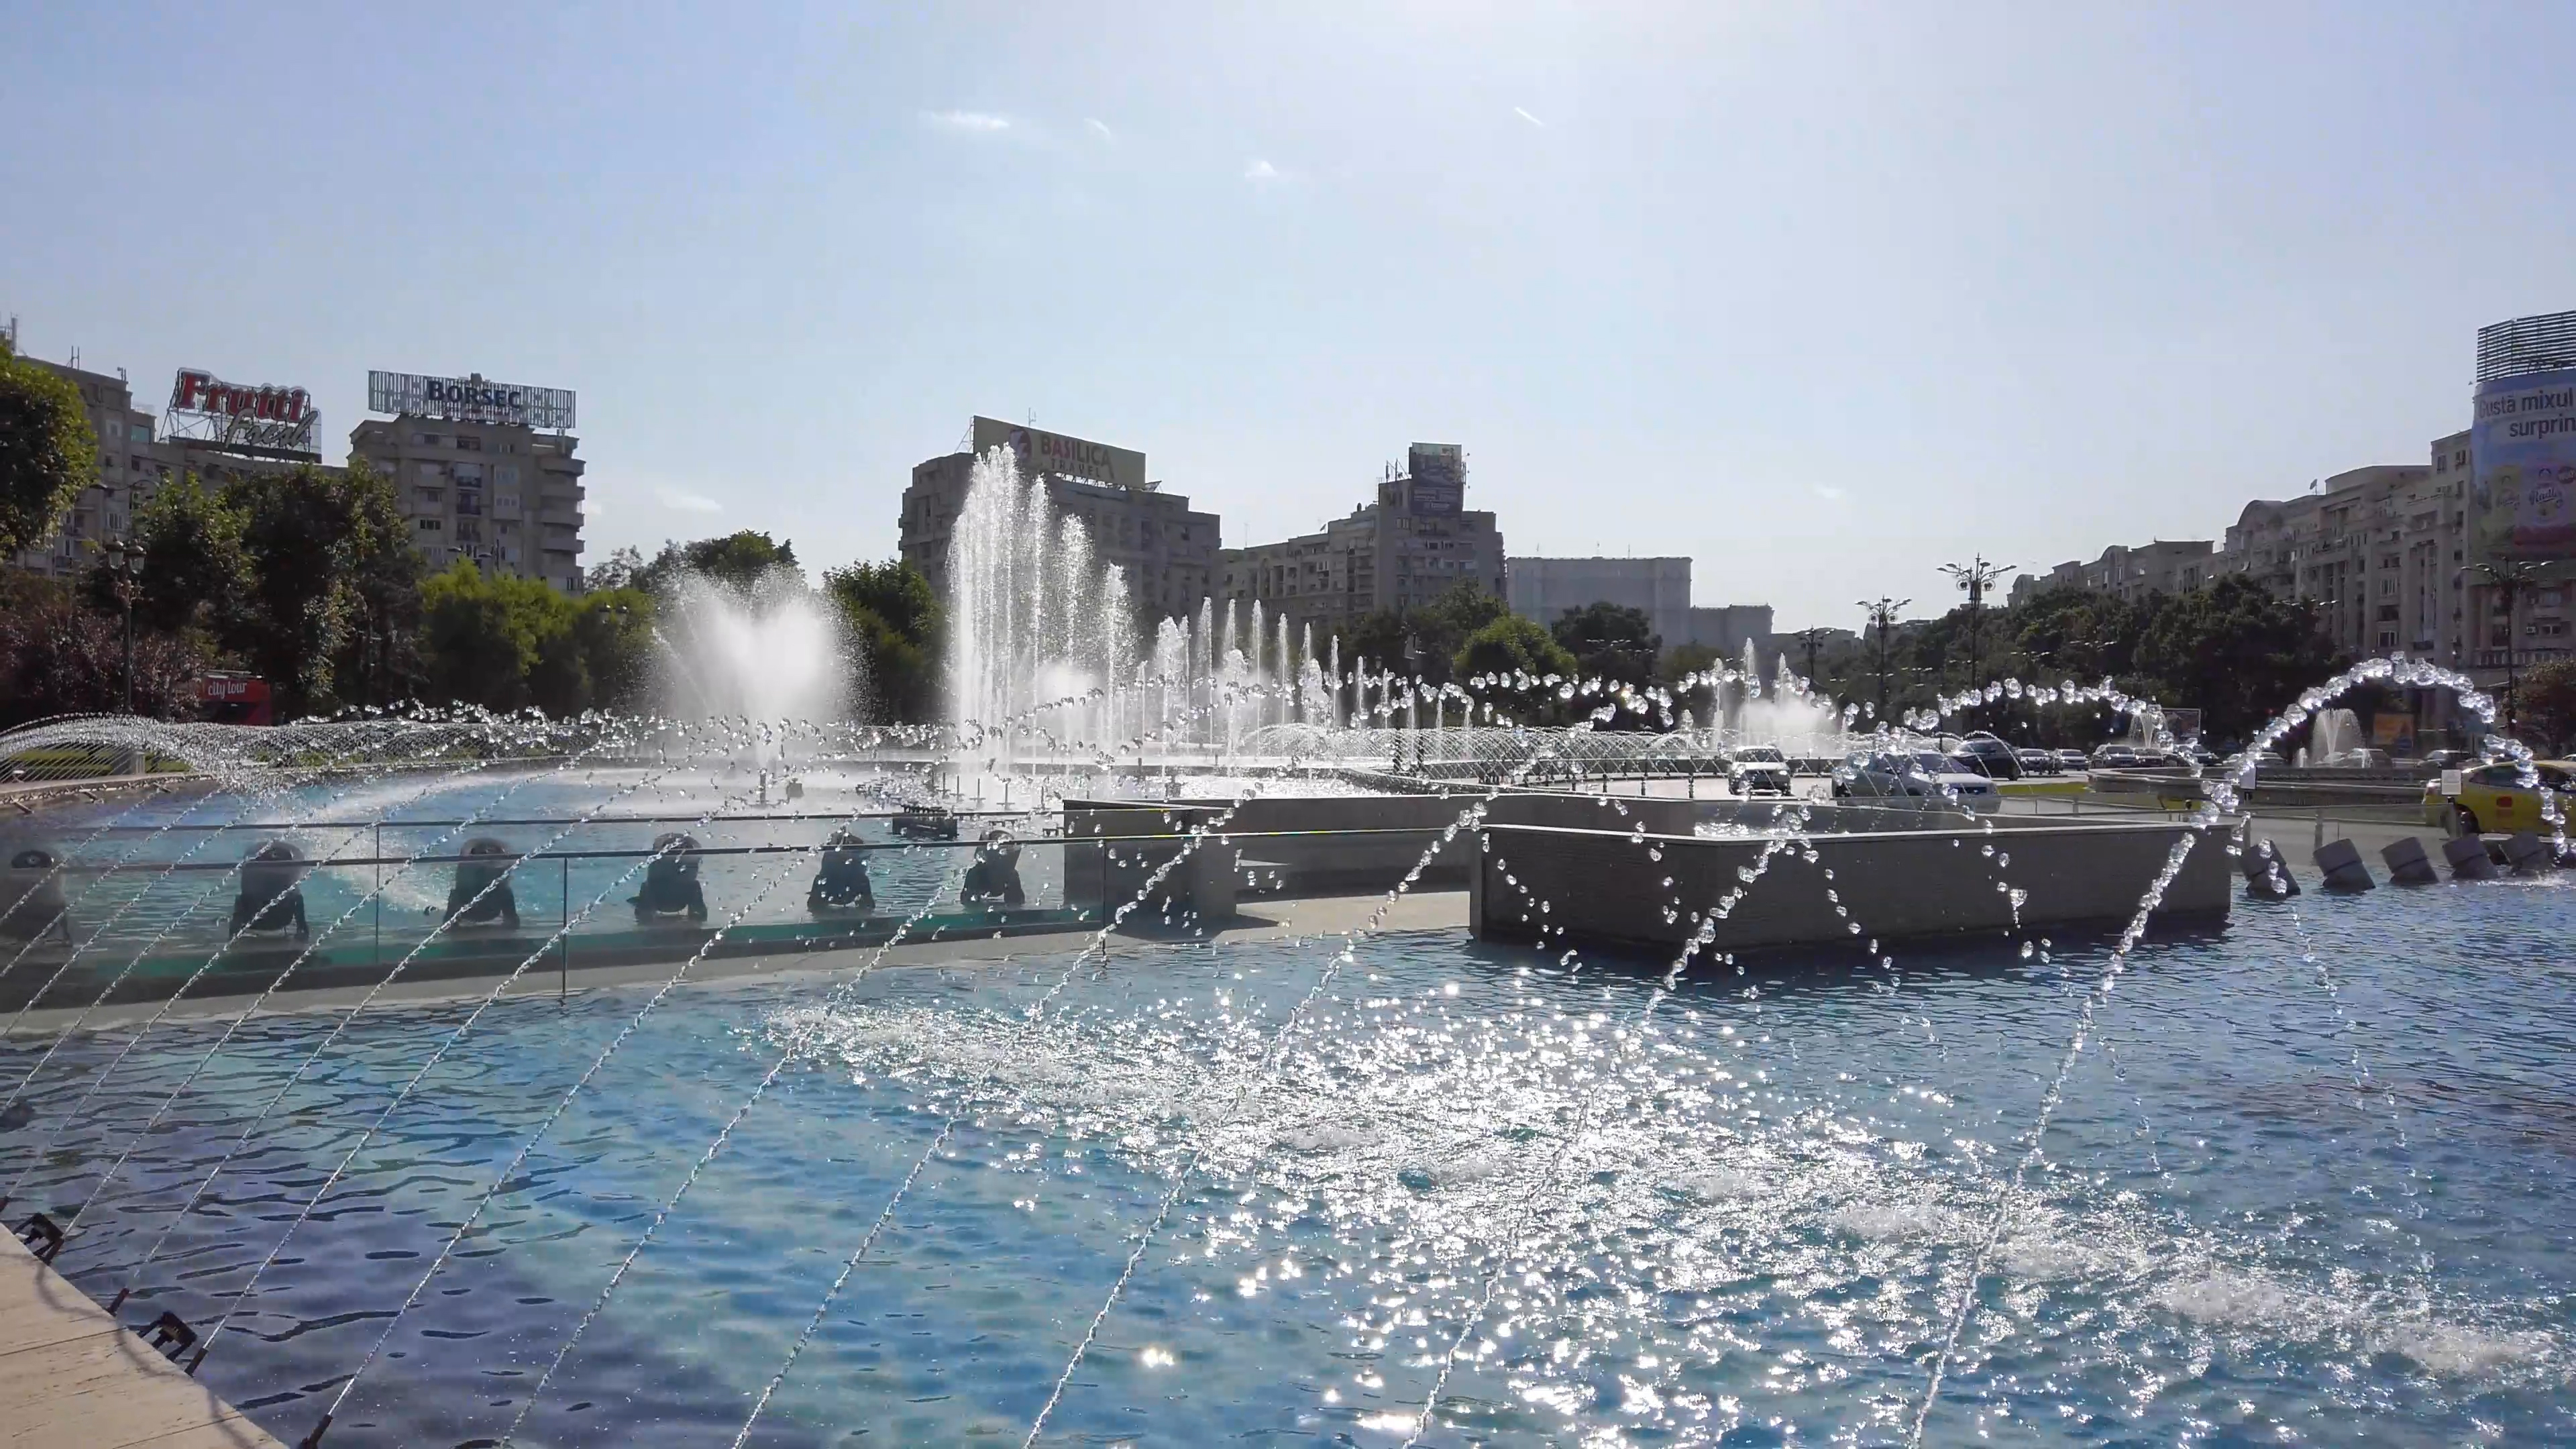 Water fountains in Unirii Square, Bucharest